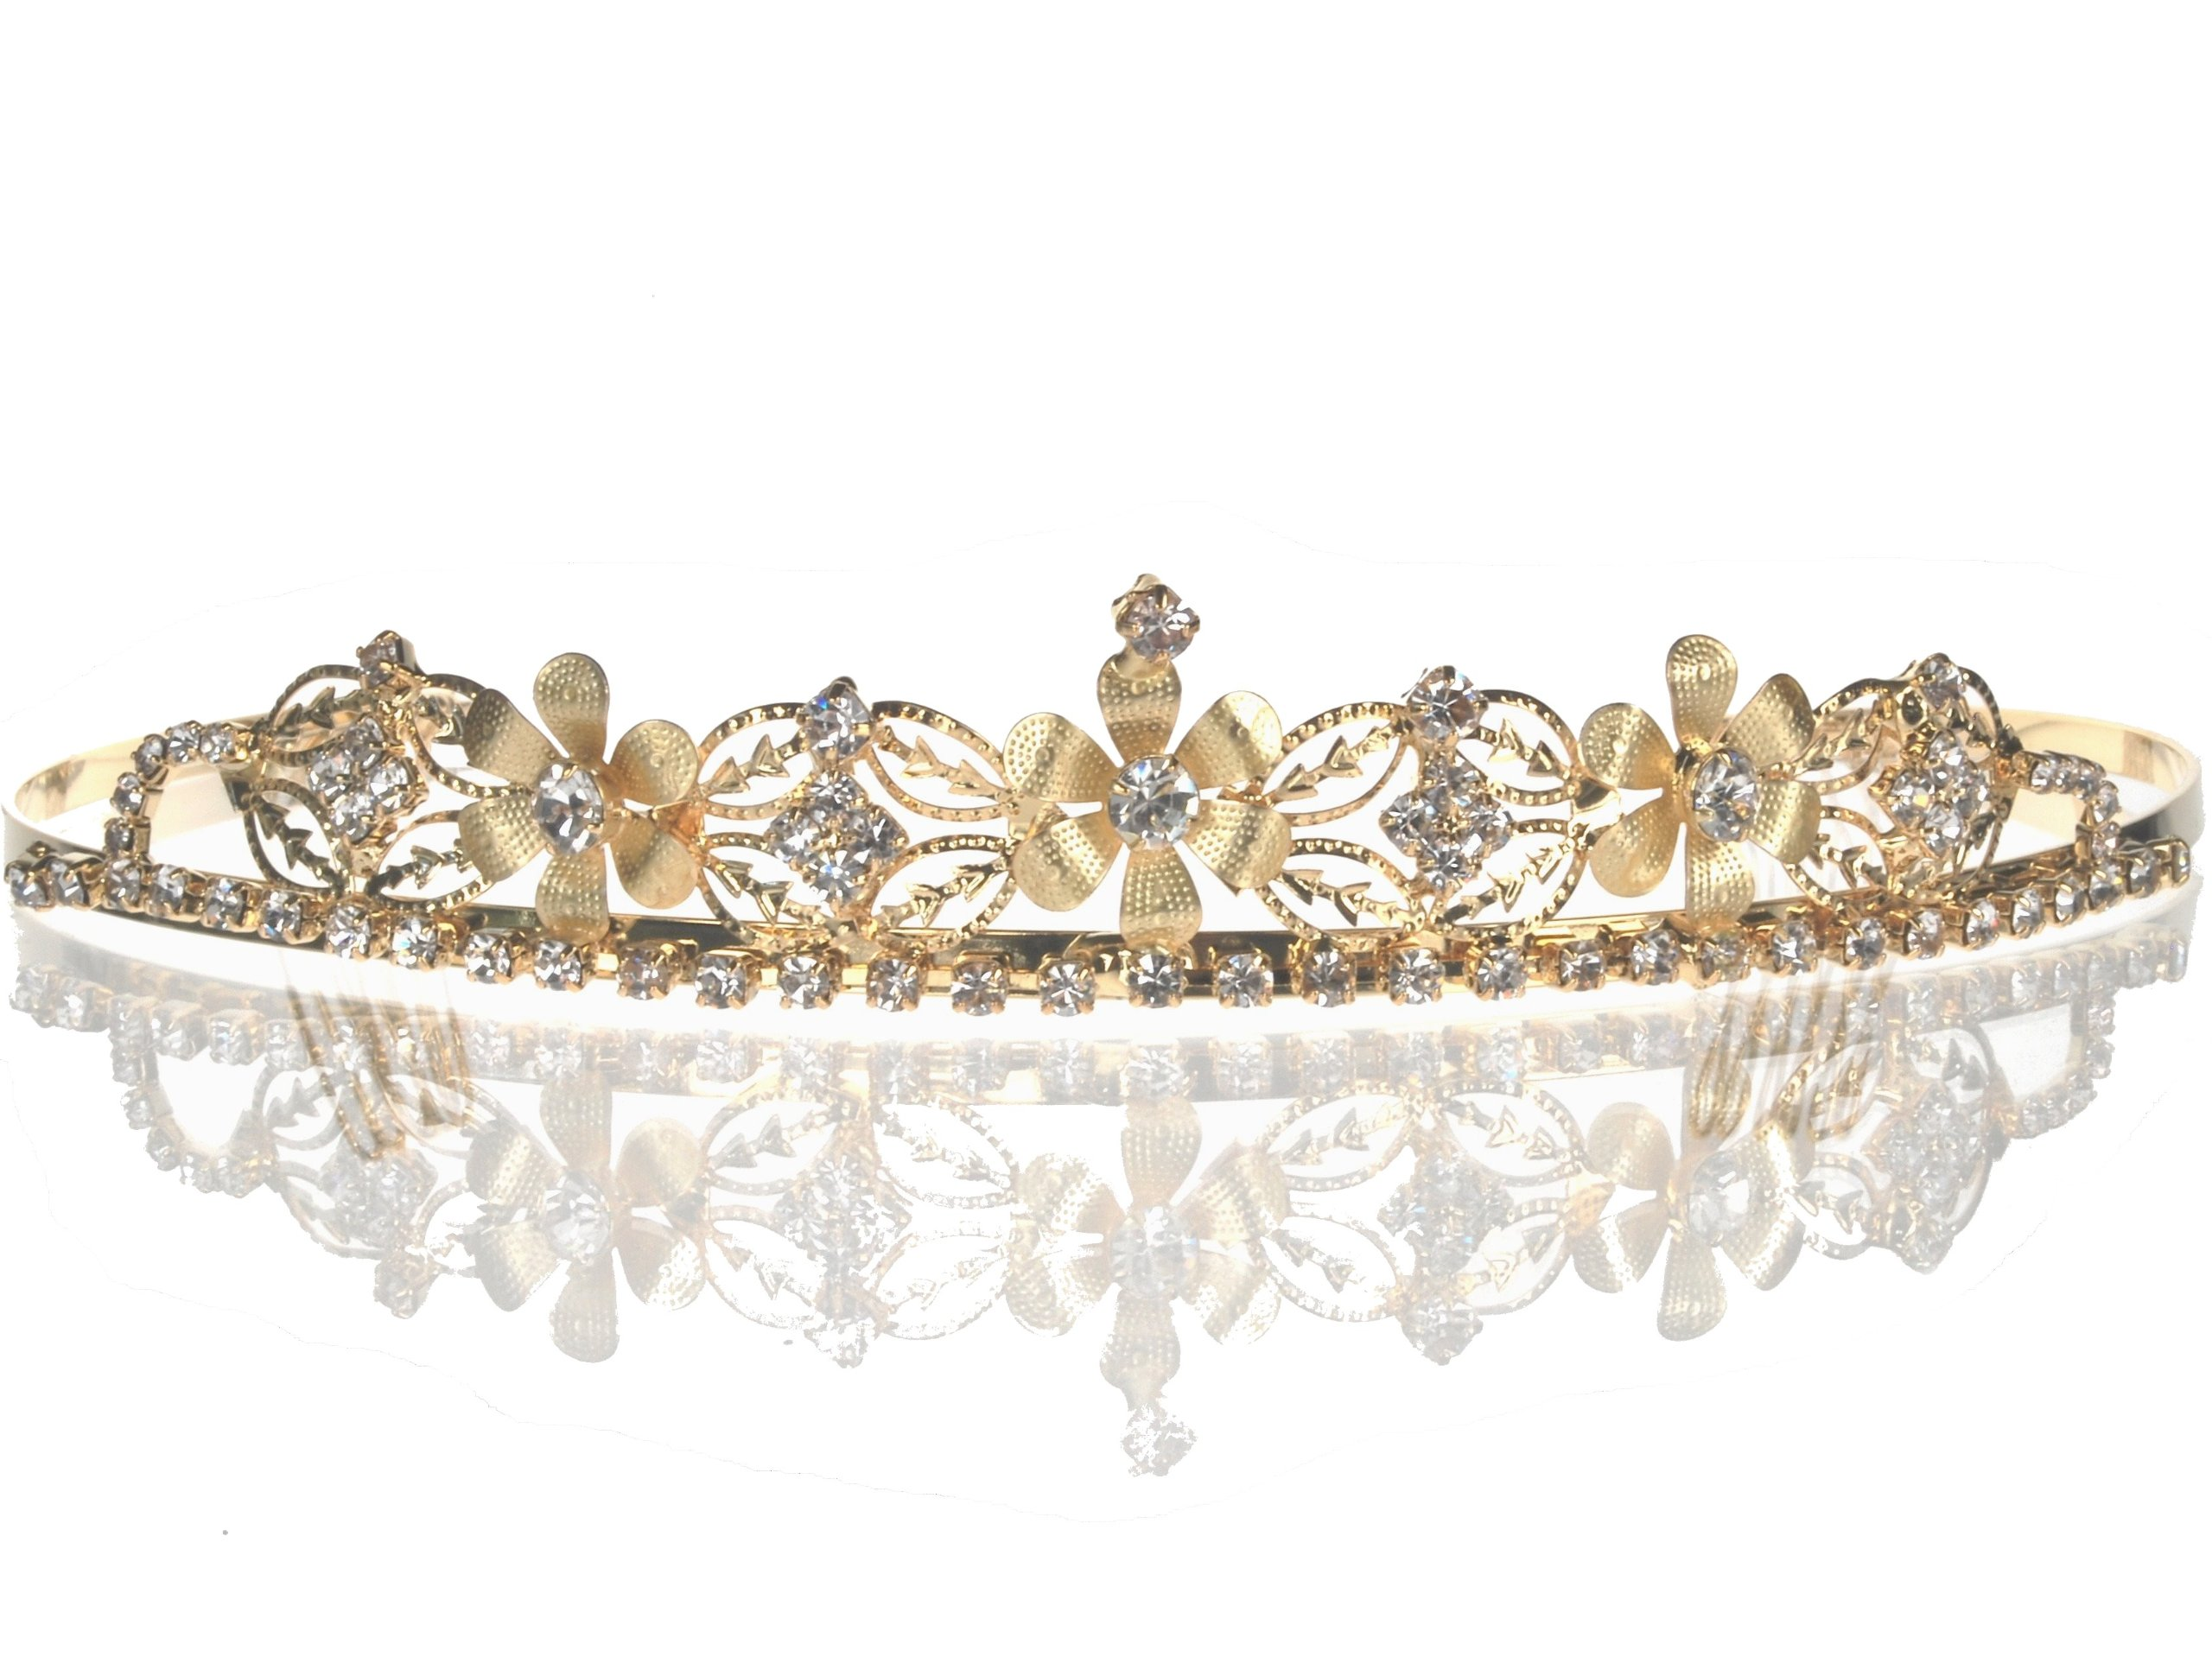 e3d597e4cadc07 Amazon.com: SC Gold Bridal Wedding Tiara With Heart and Round ...